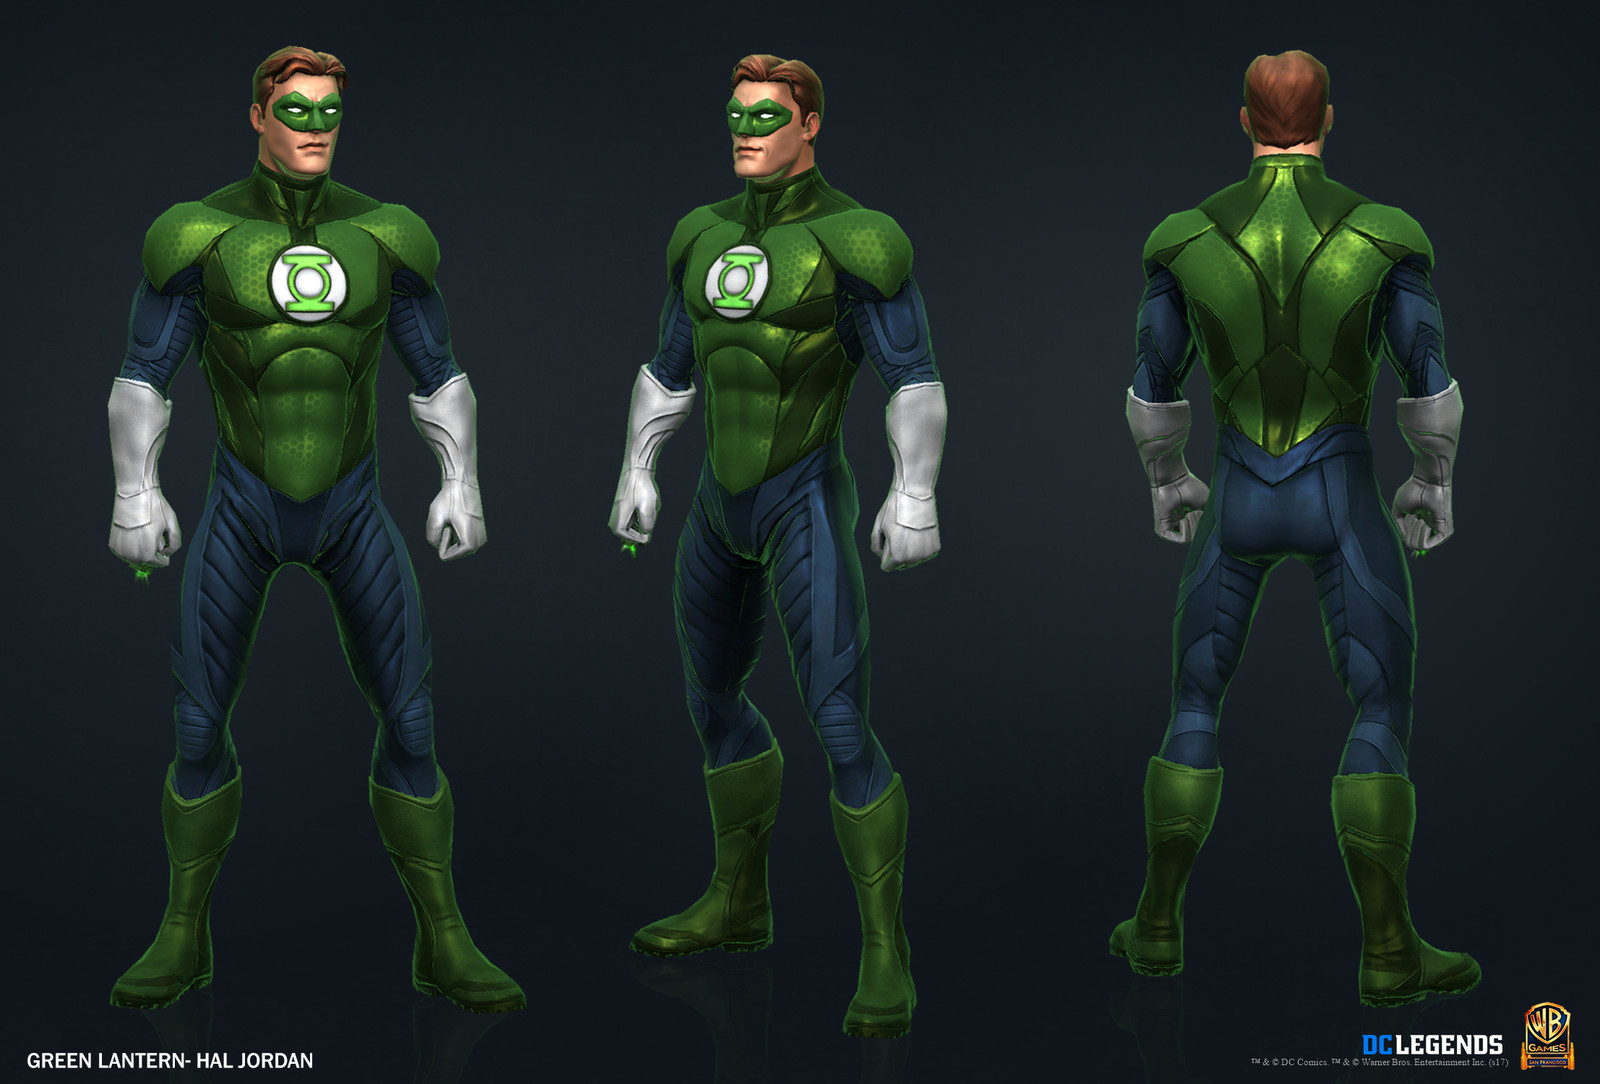 Green Lantern Hal Jordan Heroic High Poly, Low Poly Textures/Material work done by me.